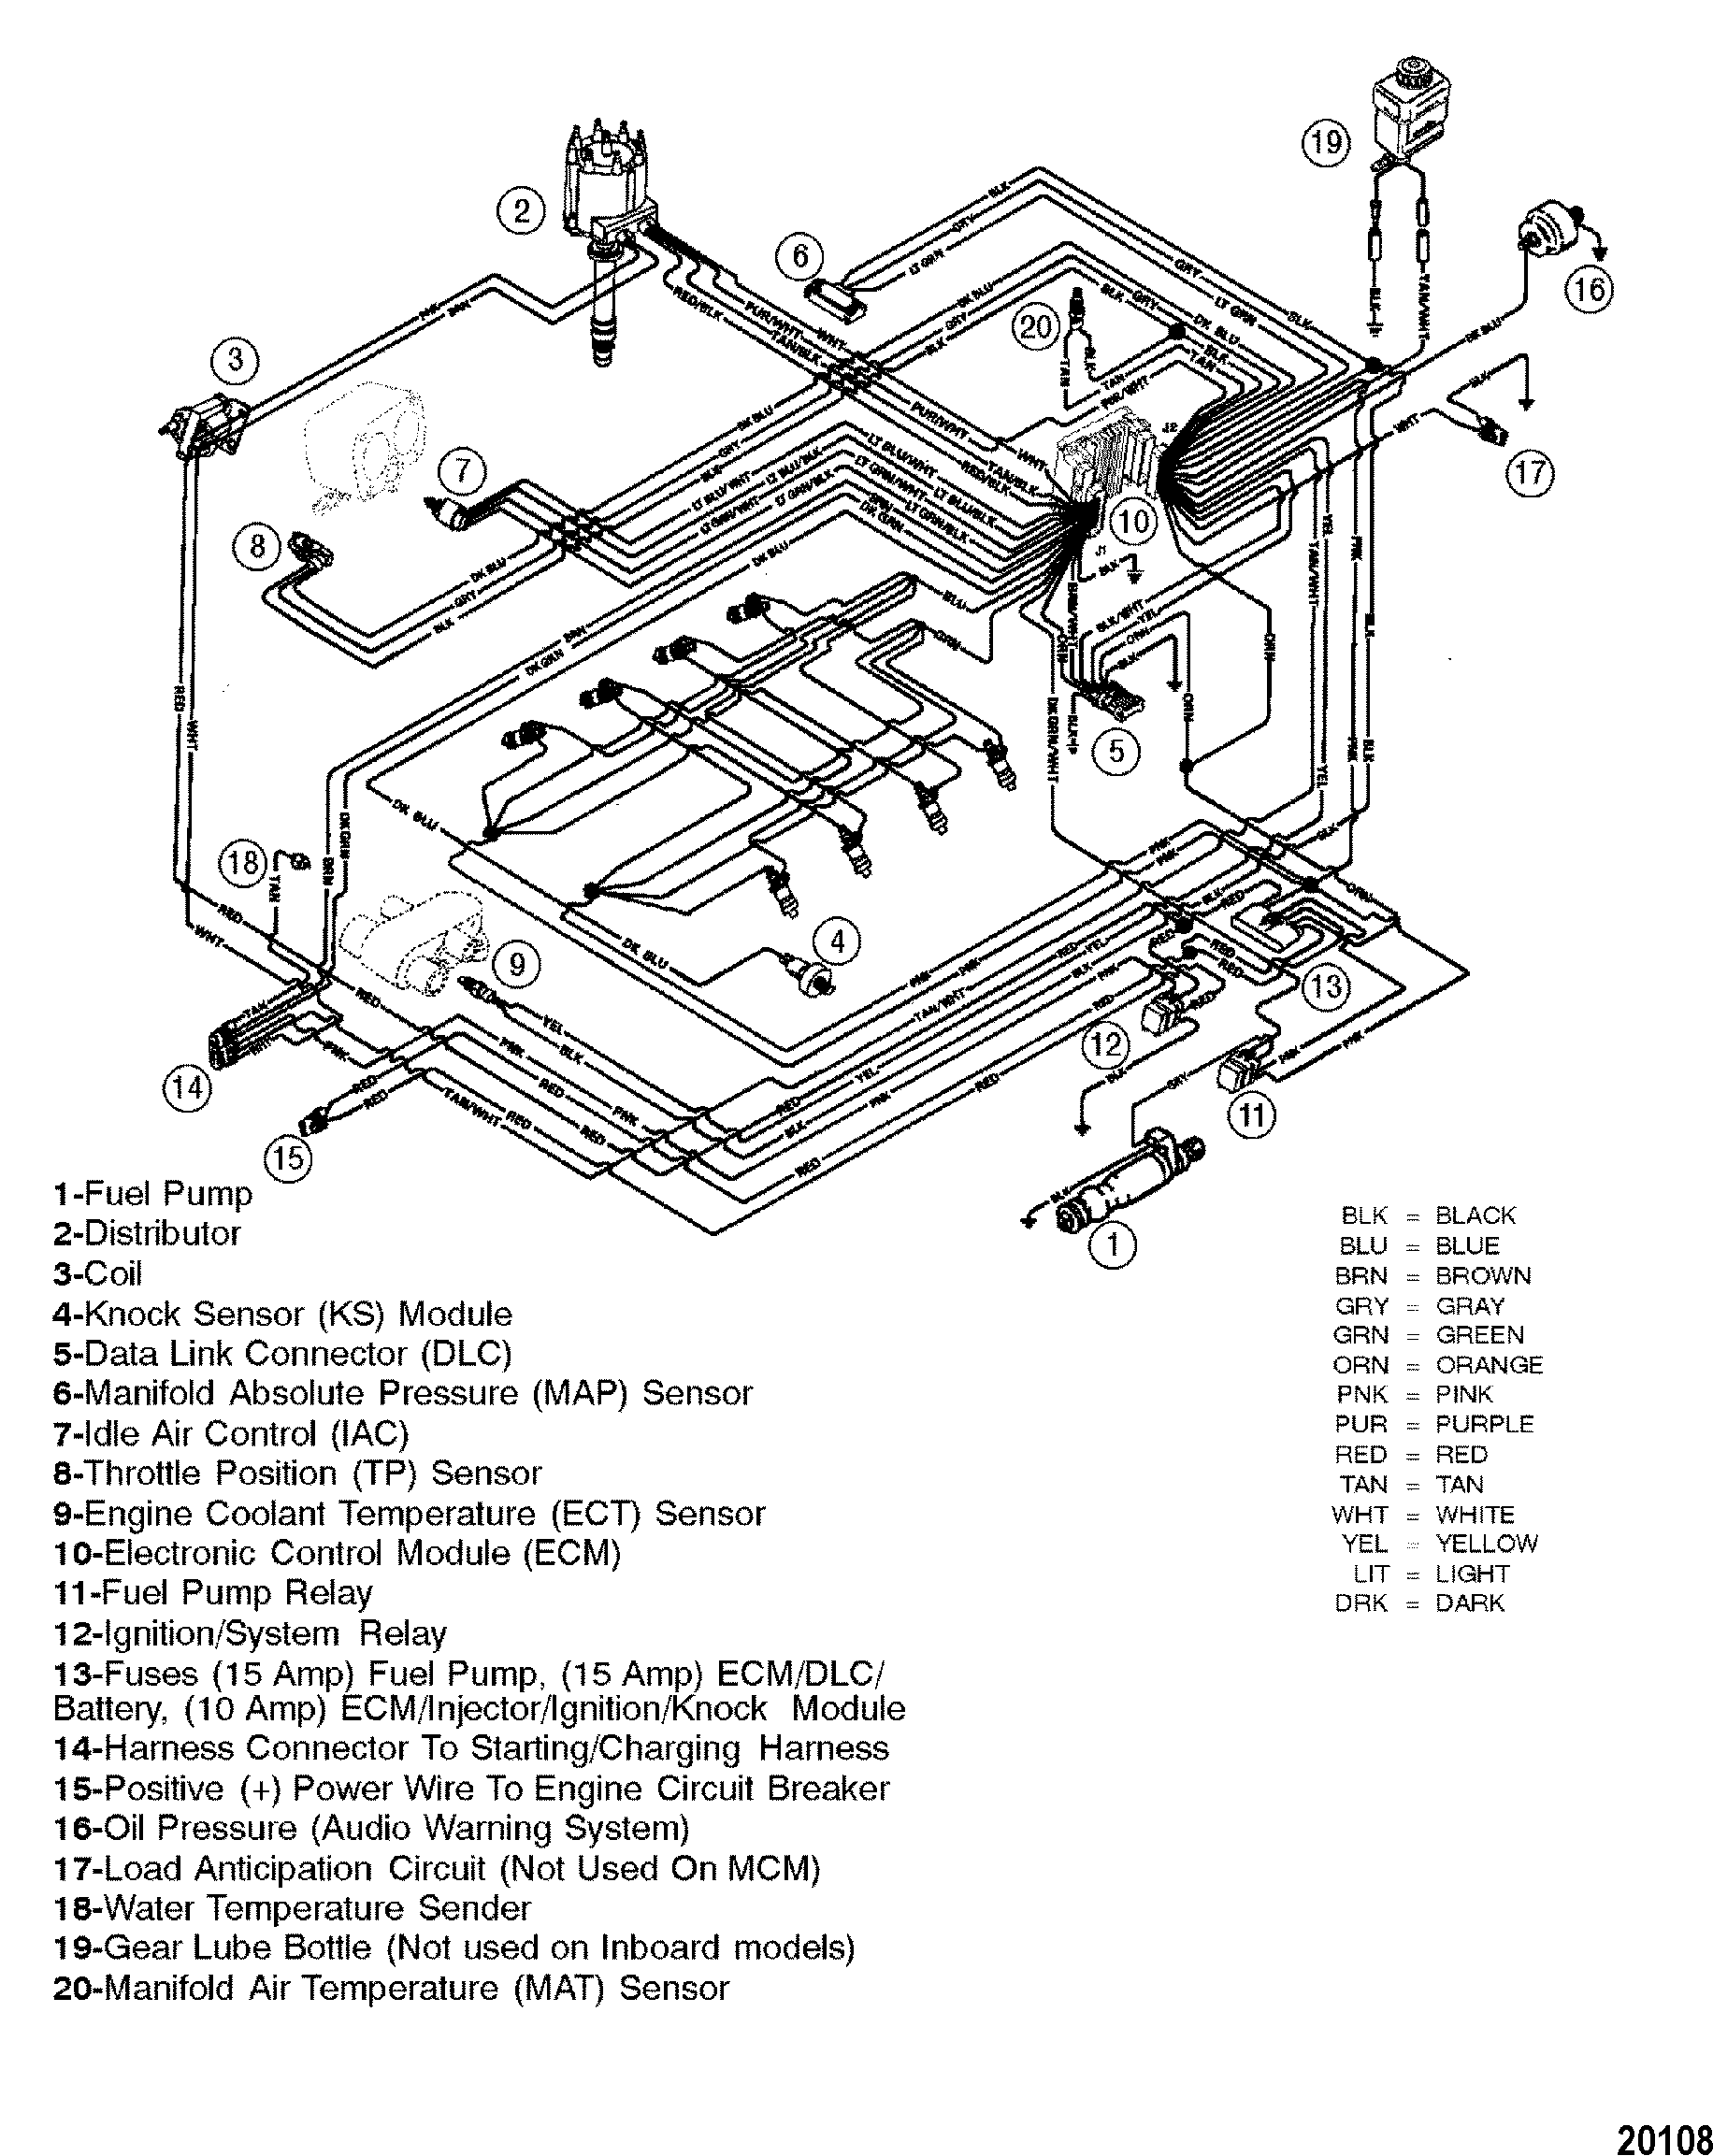 tags: #2002 chevy silverado fuel pump wiring diagram#240sx fuel pump wiring  diagram#volvo fuel pump wiring diagram#chevy fuel pump wiring harness#fuel  pump